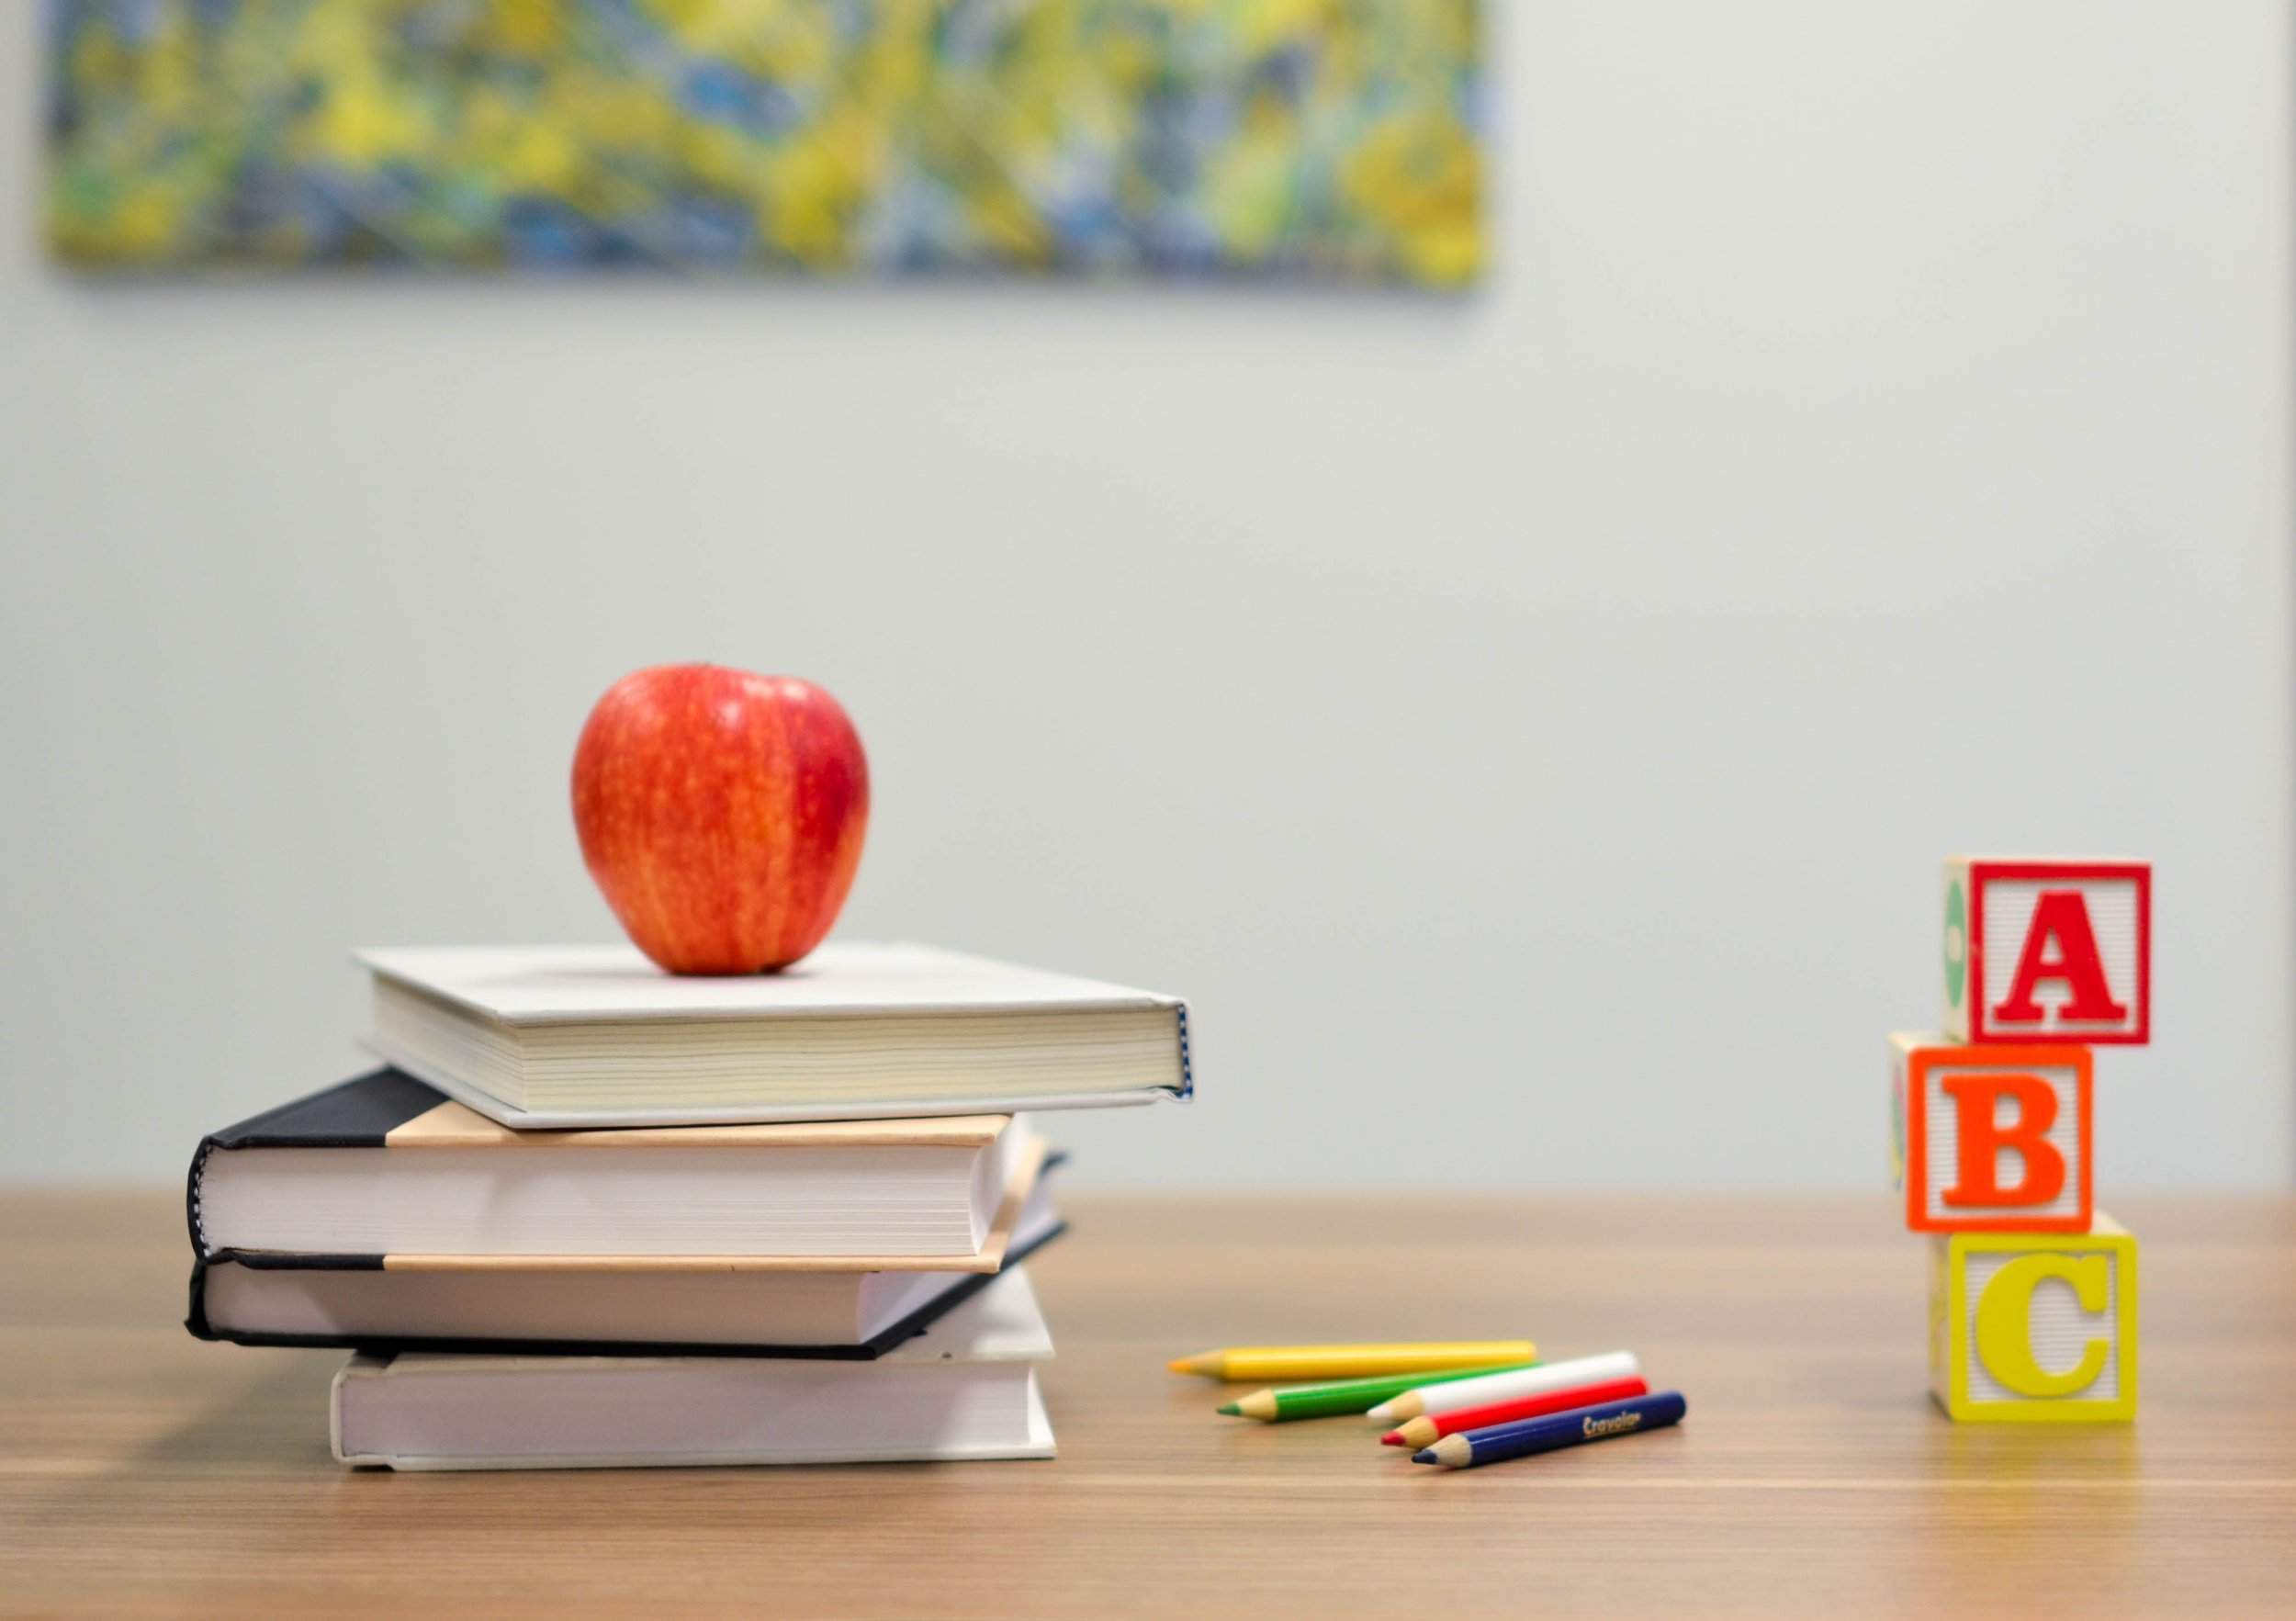 Photo of a wood desk. On top is 4 school books with a red apple on top, colored pencils, ABC blocks stacked.